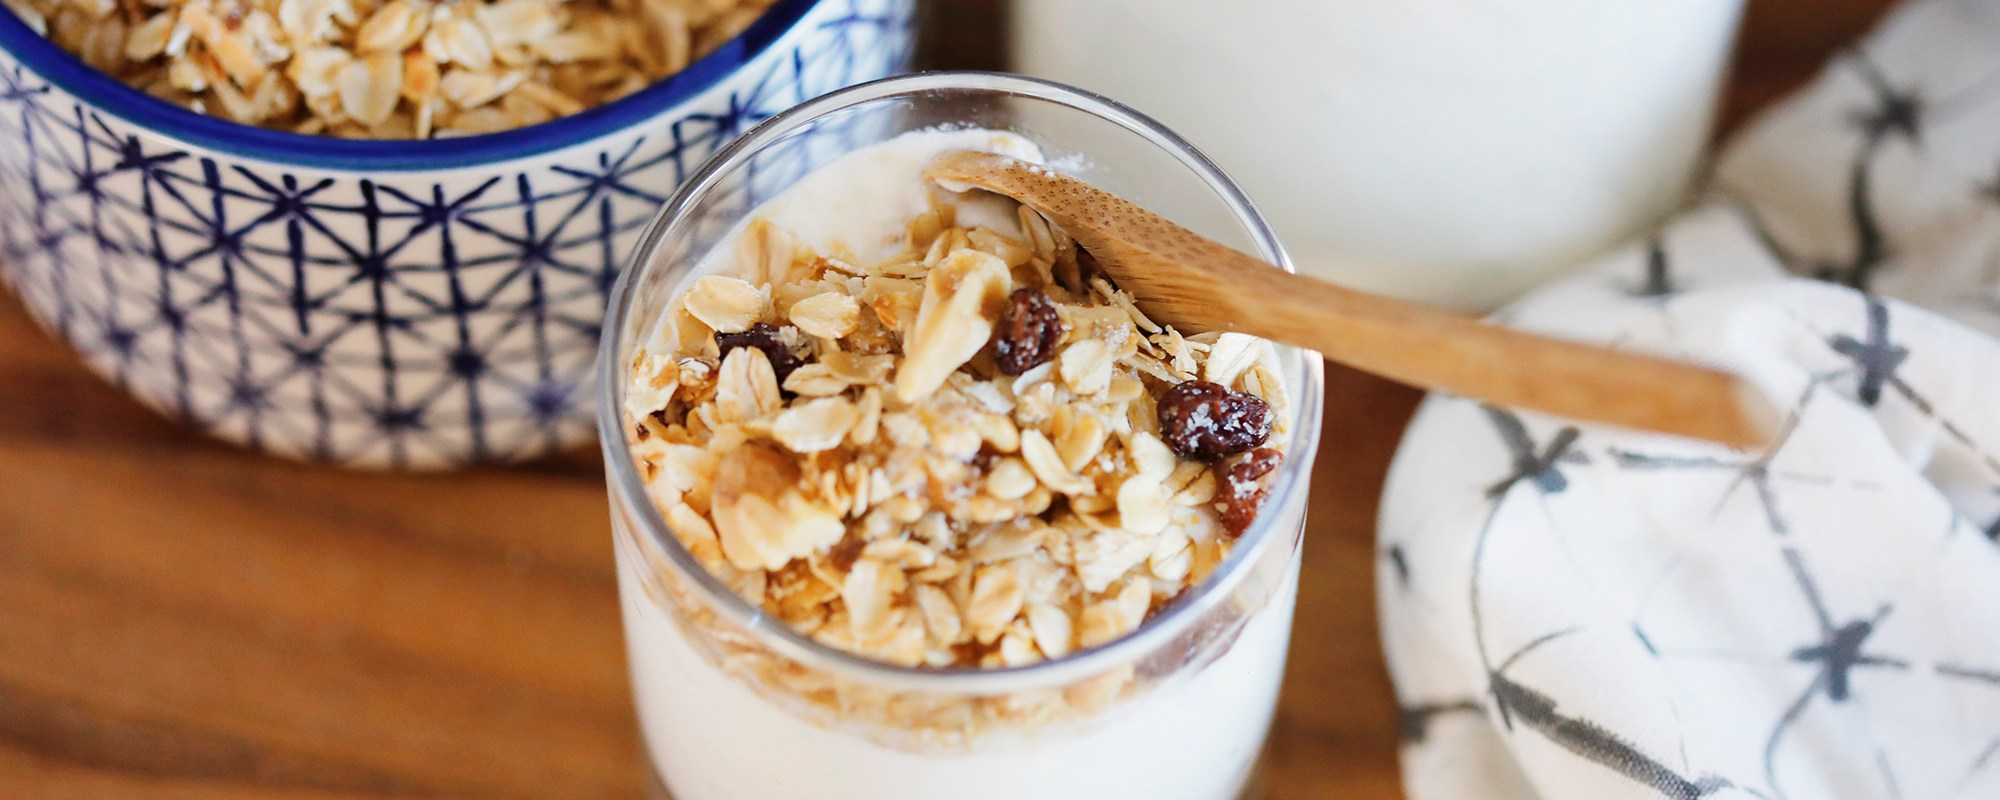 homemade yogurt with homemade granola